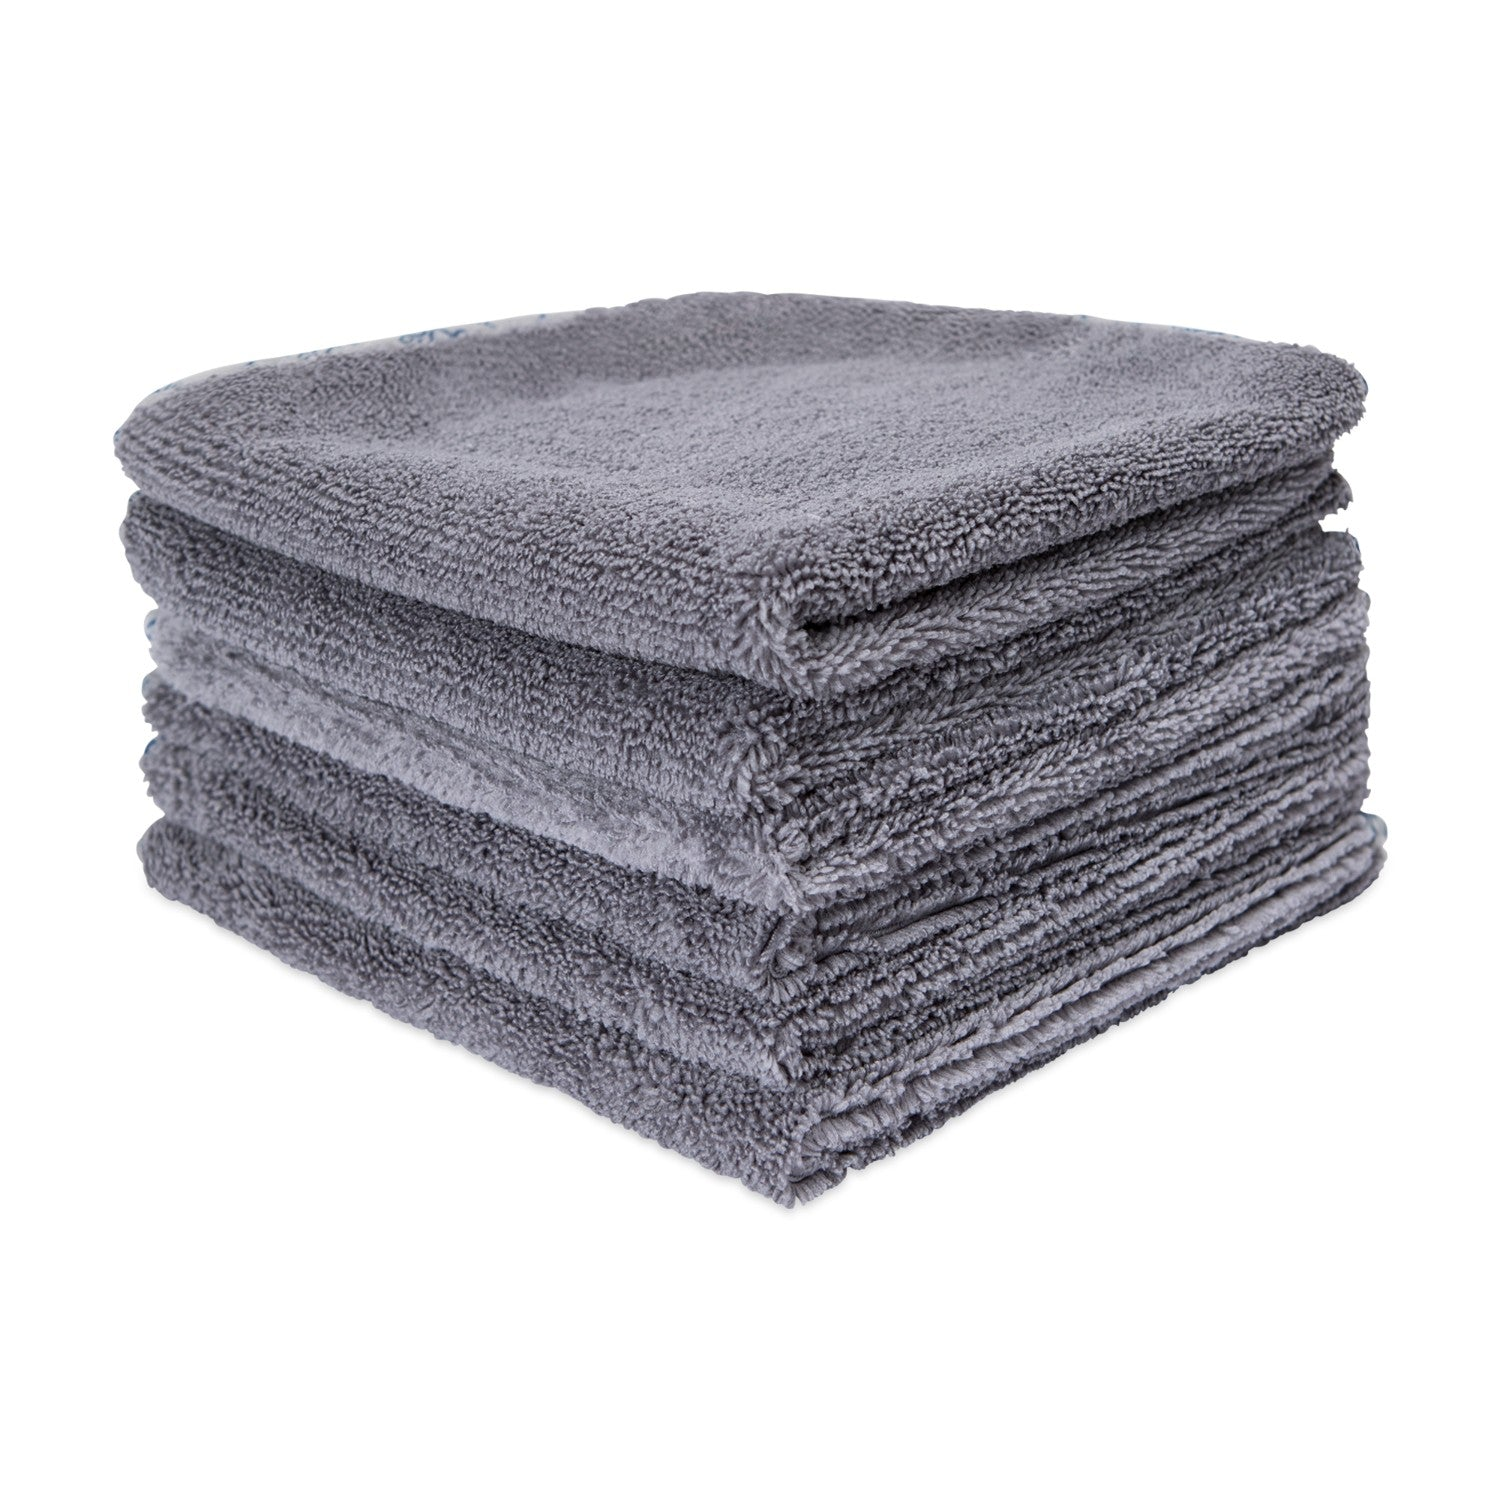 16 x 16 Gray Microfiber Towels For Cars 400 GSM